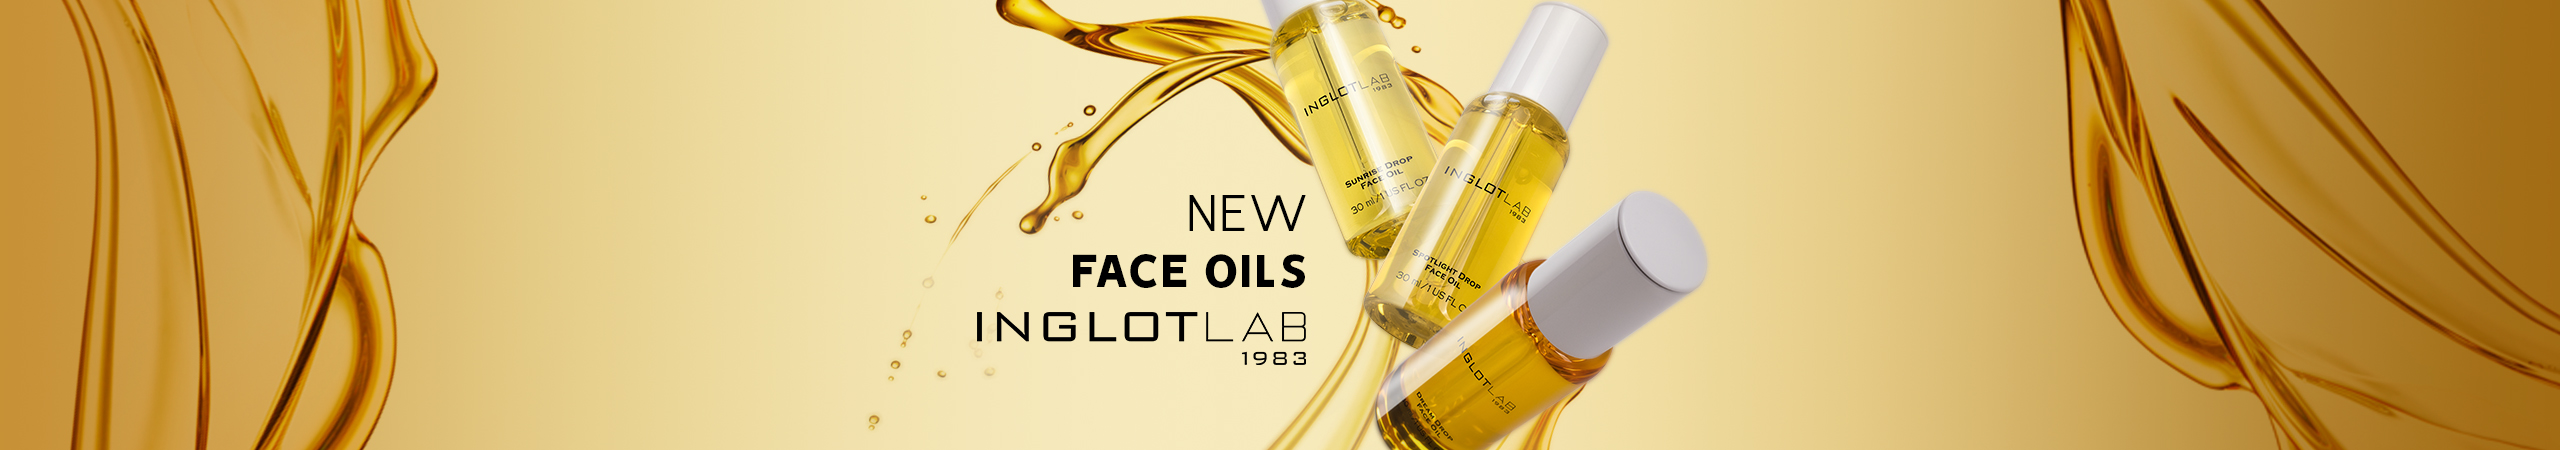 6205977faceoils